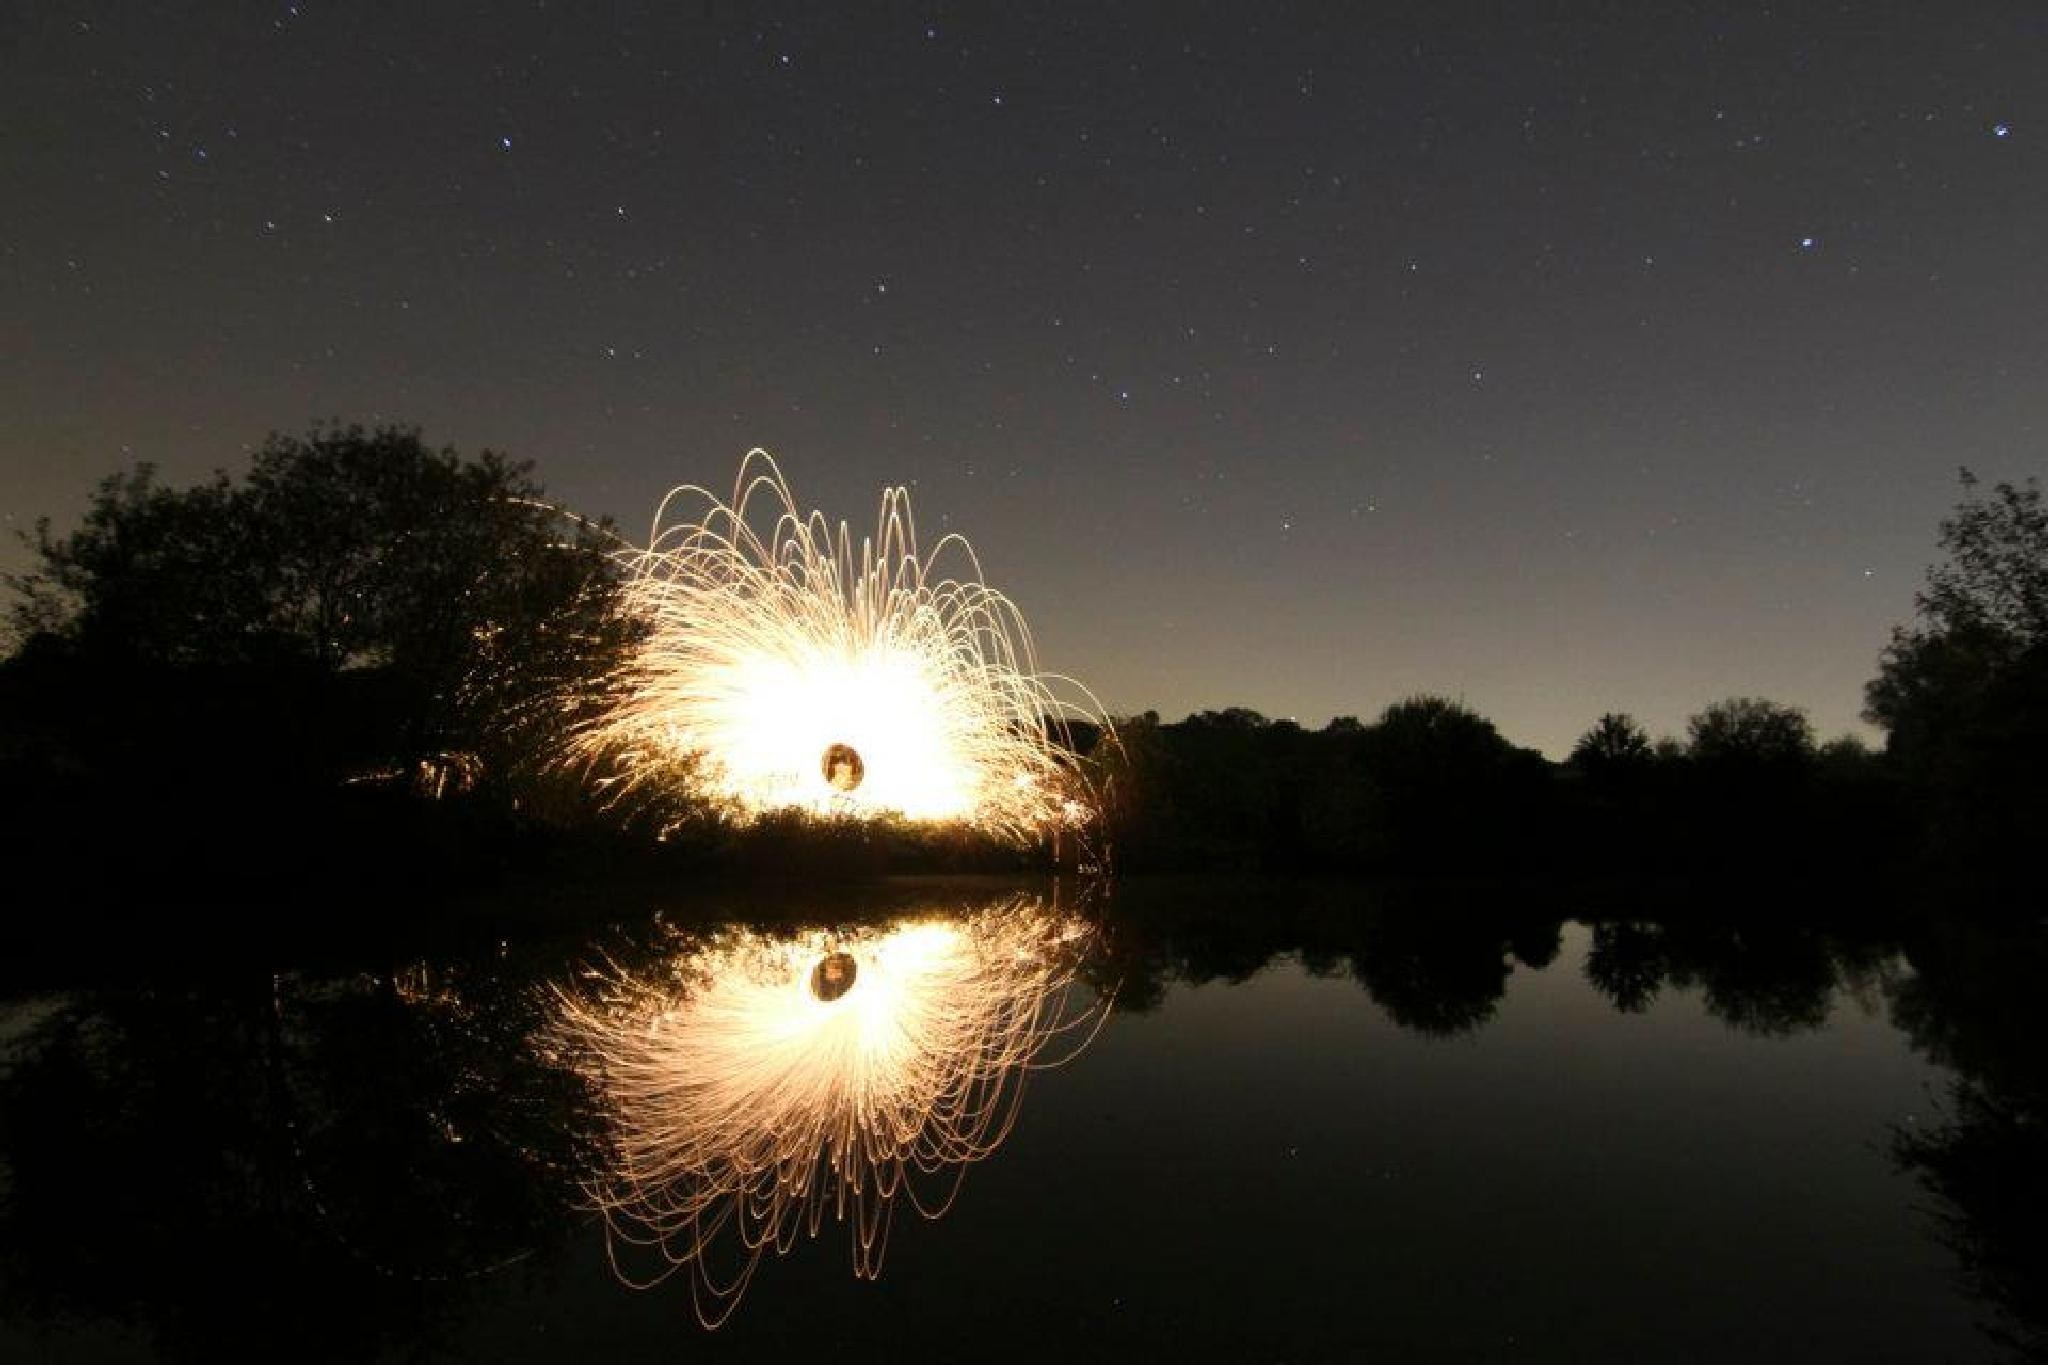 Lightpainting by nicole.wetzels